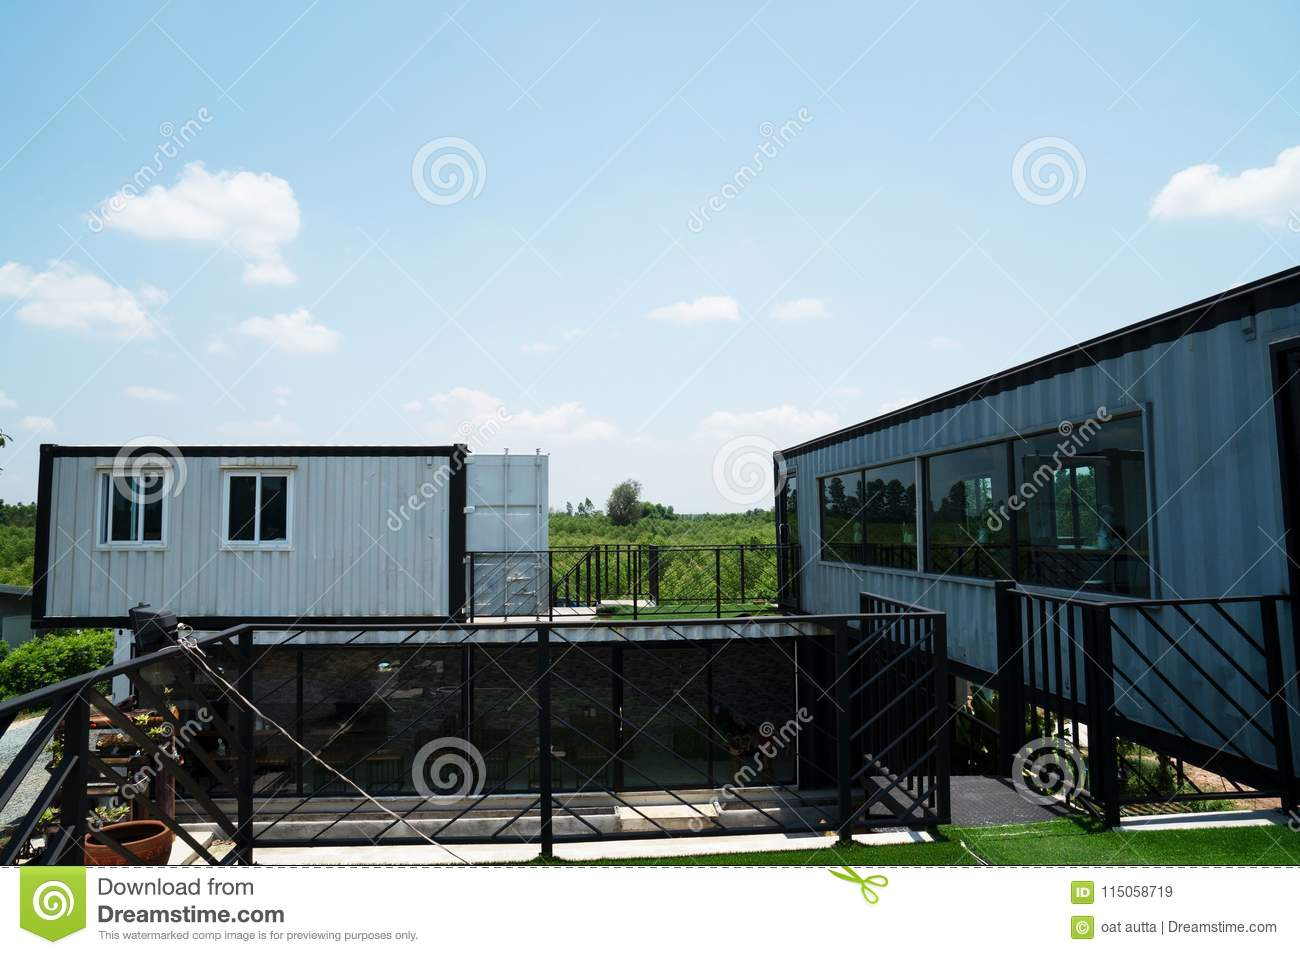 Modern metal building made from shipping house containers and blue sky background